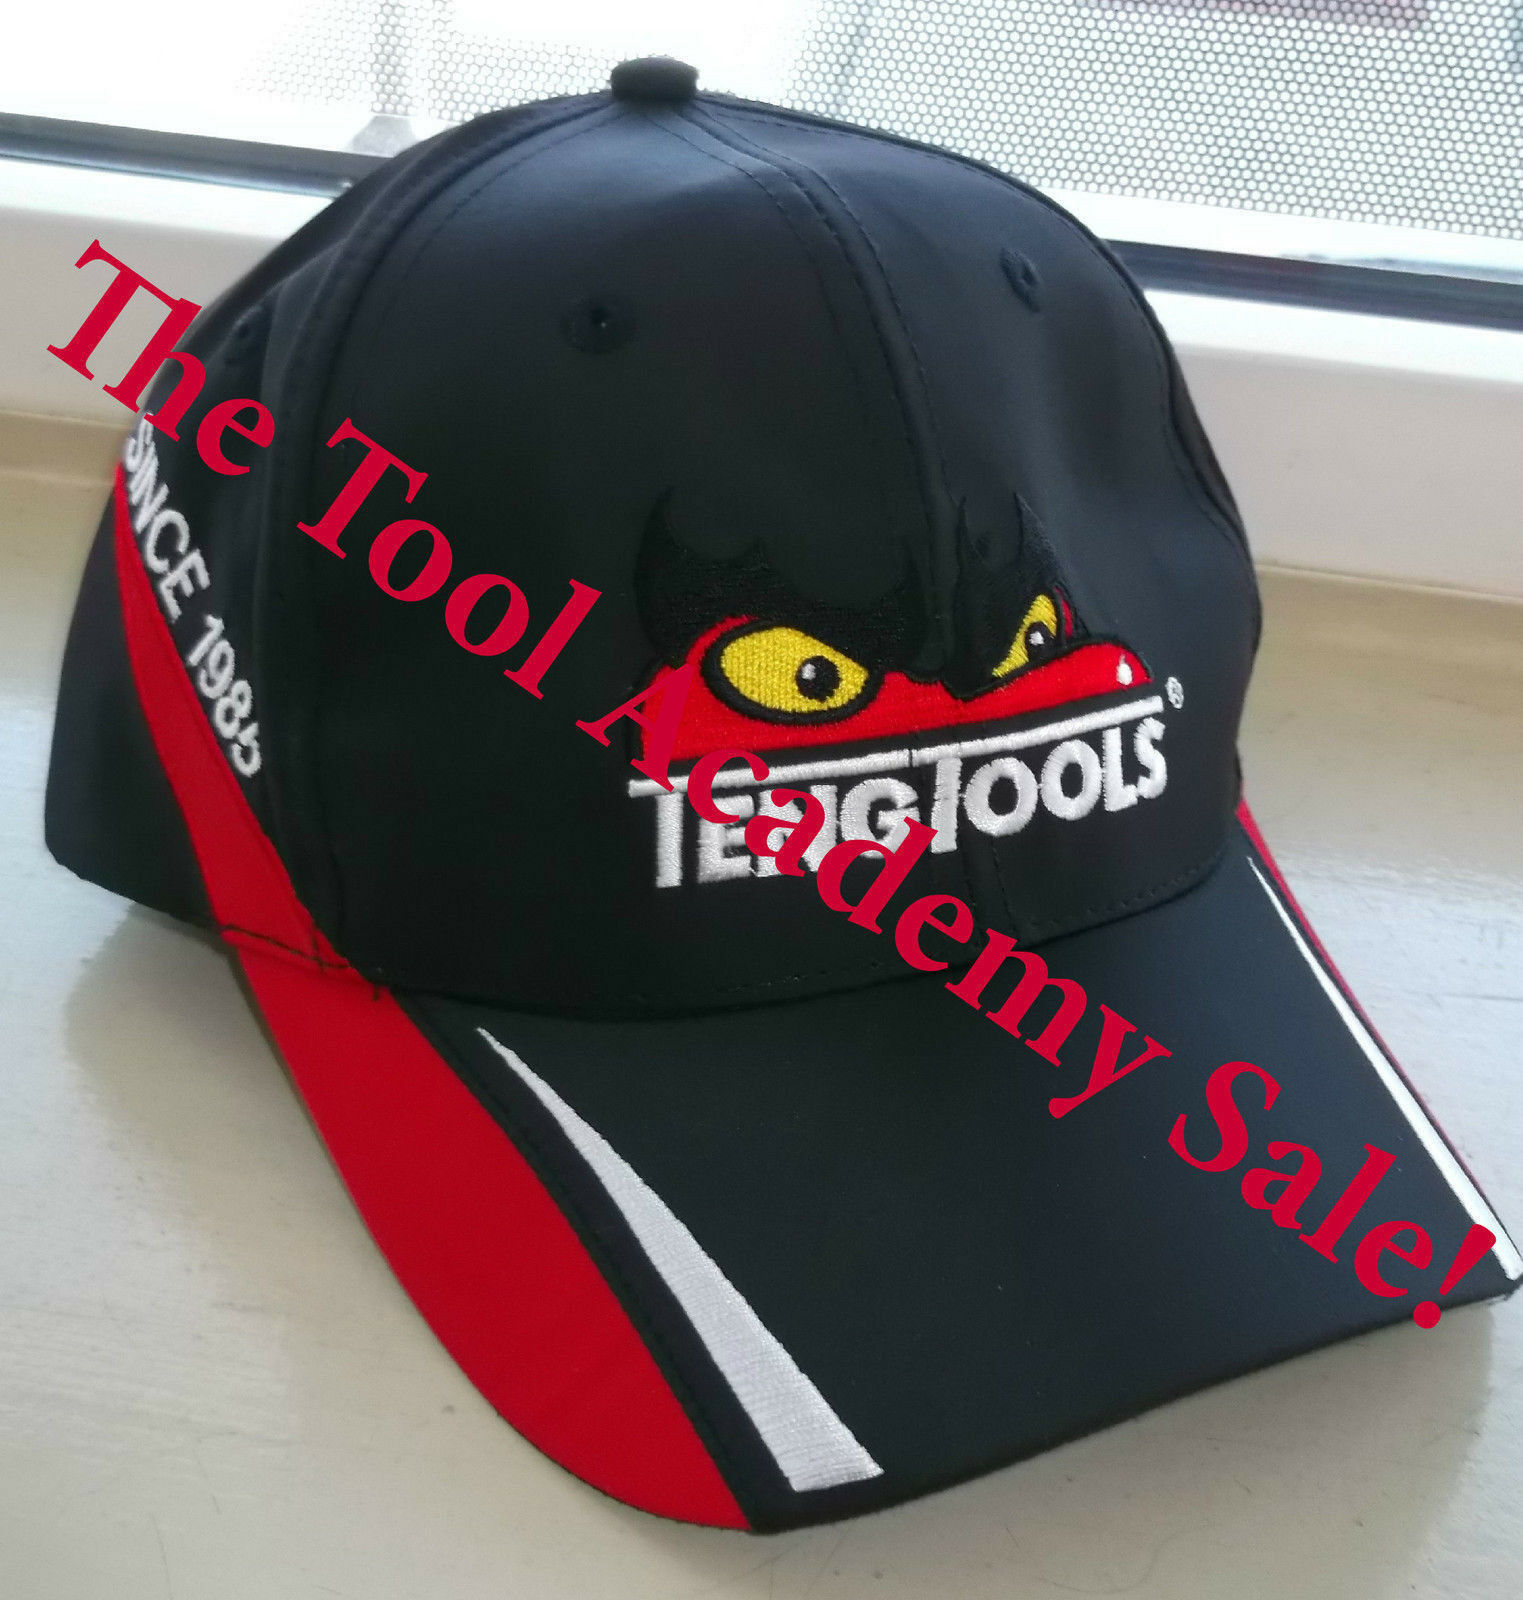 TENG TOOLS NEW DESIGN WOOL /& ACRYLIC RED CAP WITH LOGO AND BRANDING